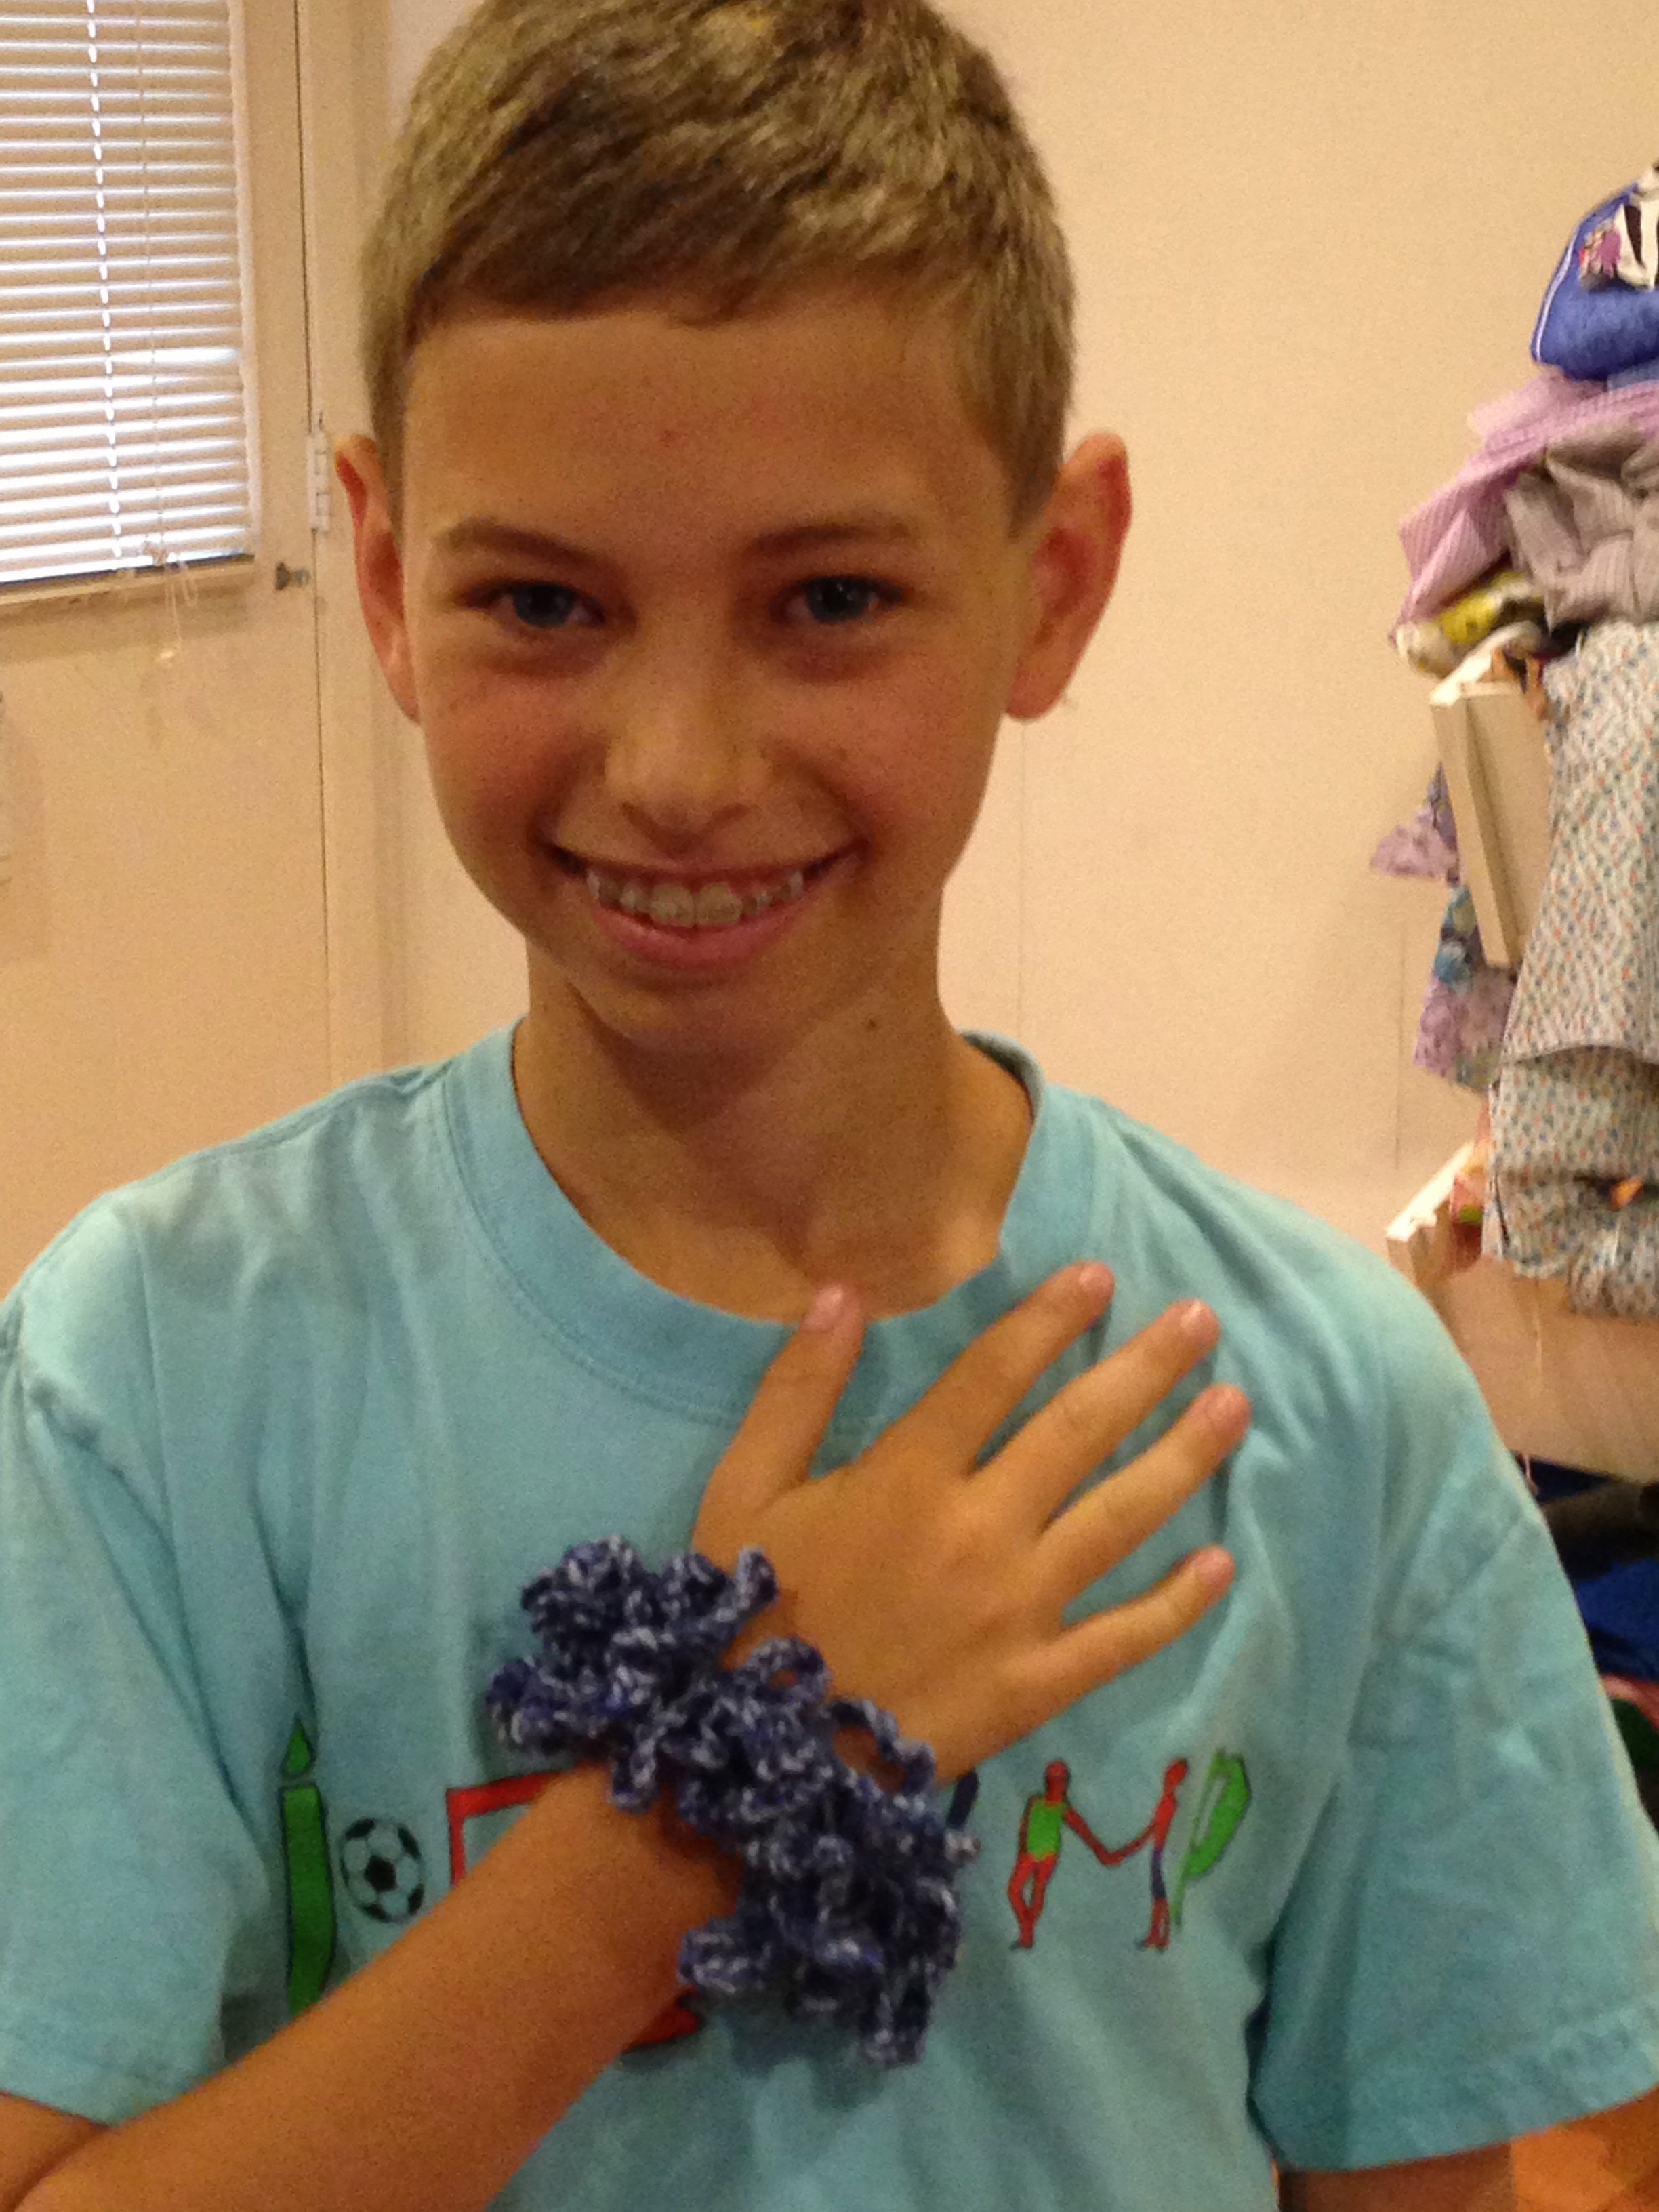 8th grade schrunchie - he made this for his sister.